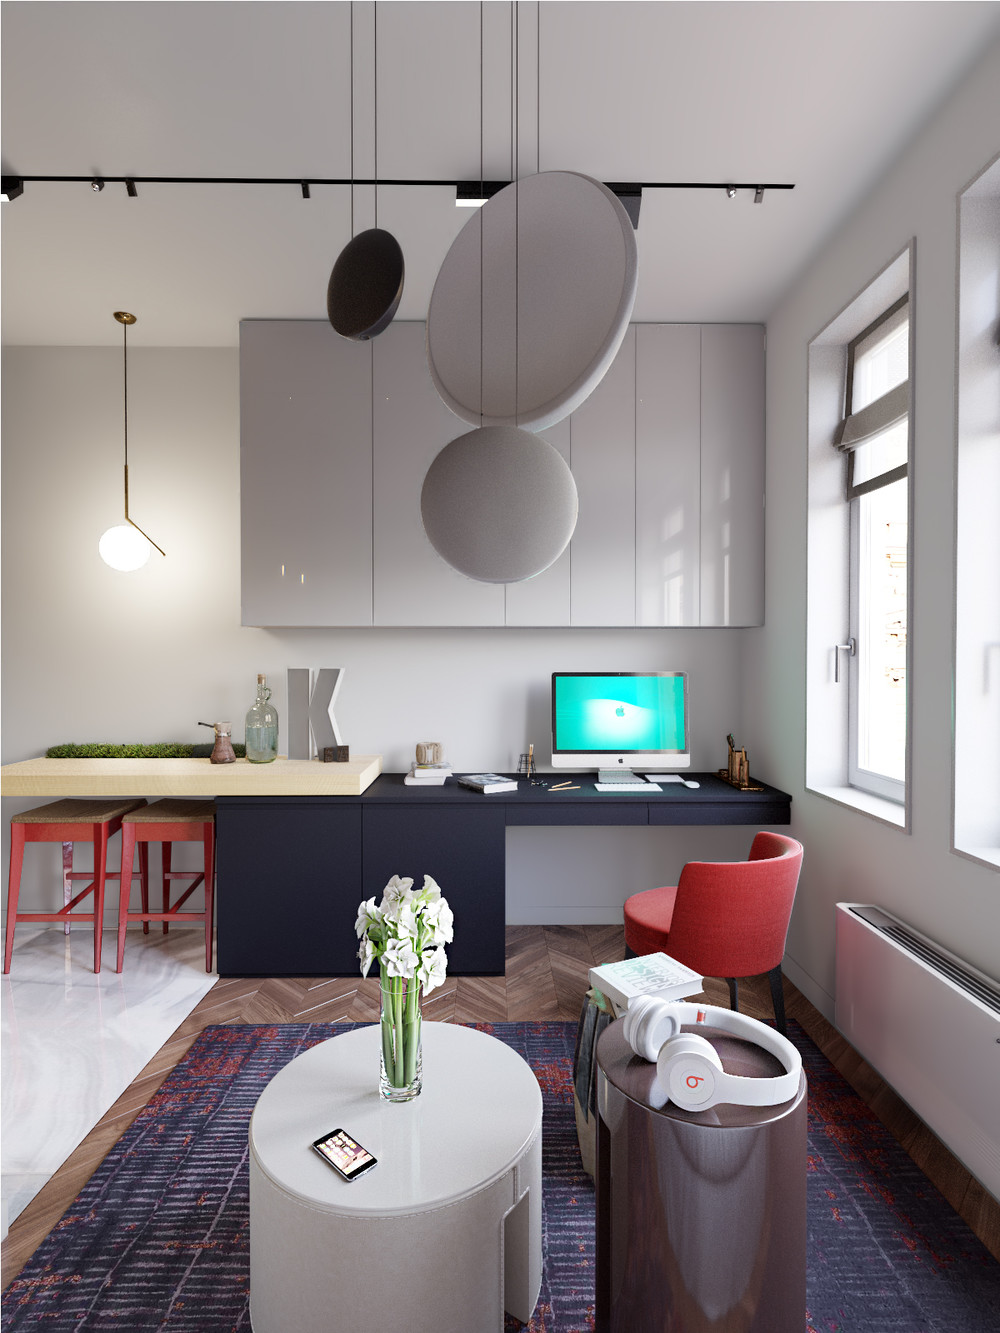 3 Small Spaces Packed With Big Style (Includes Floor Plans)